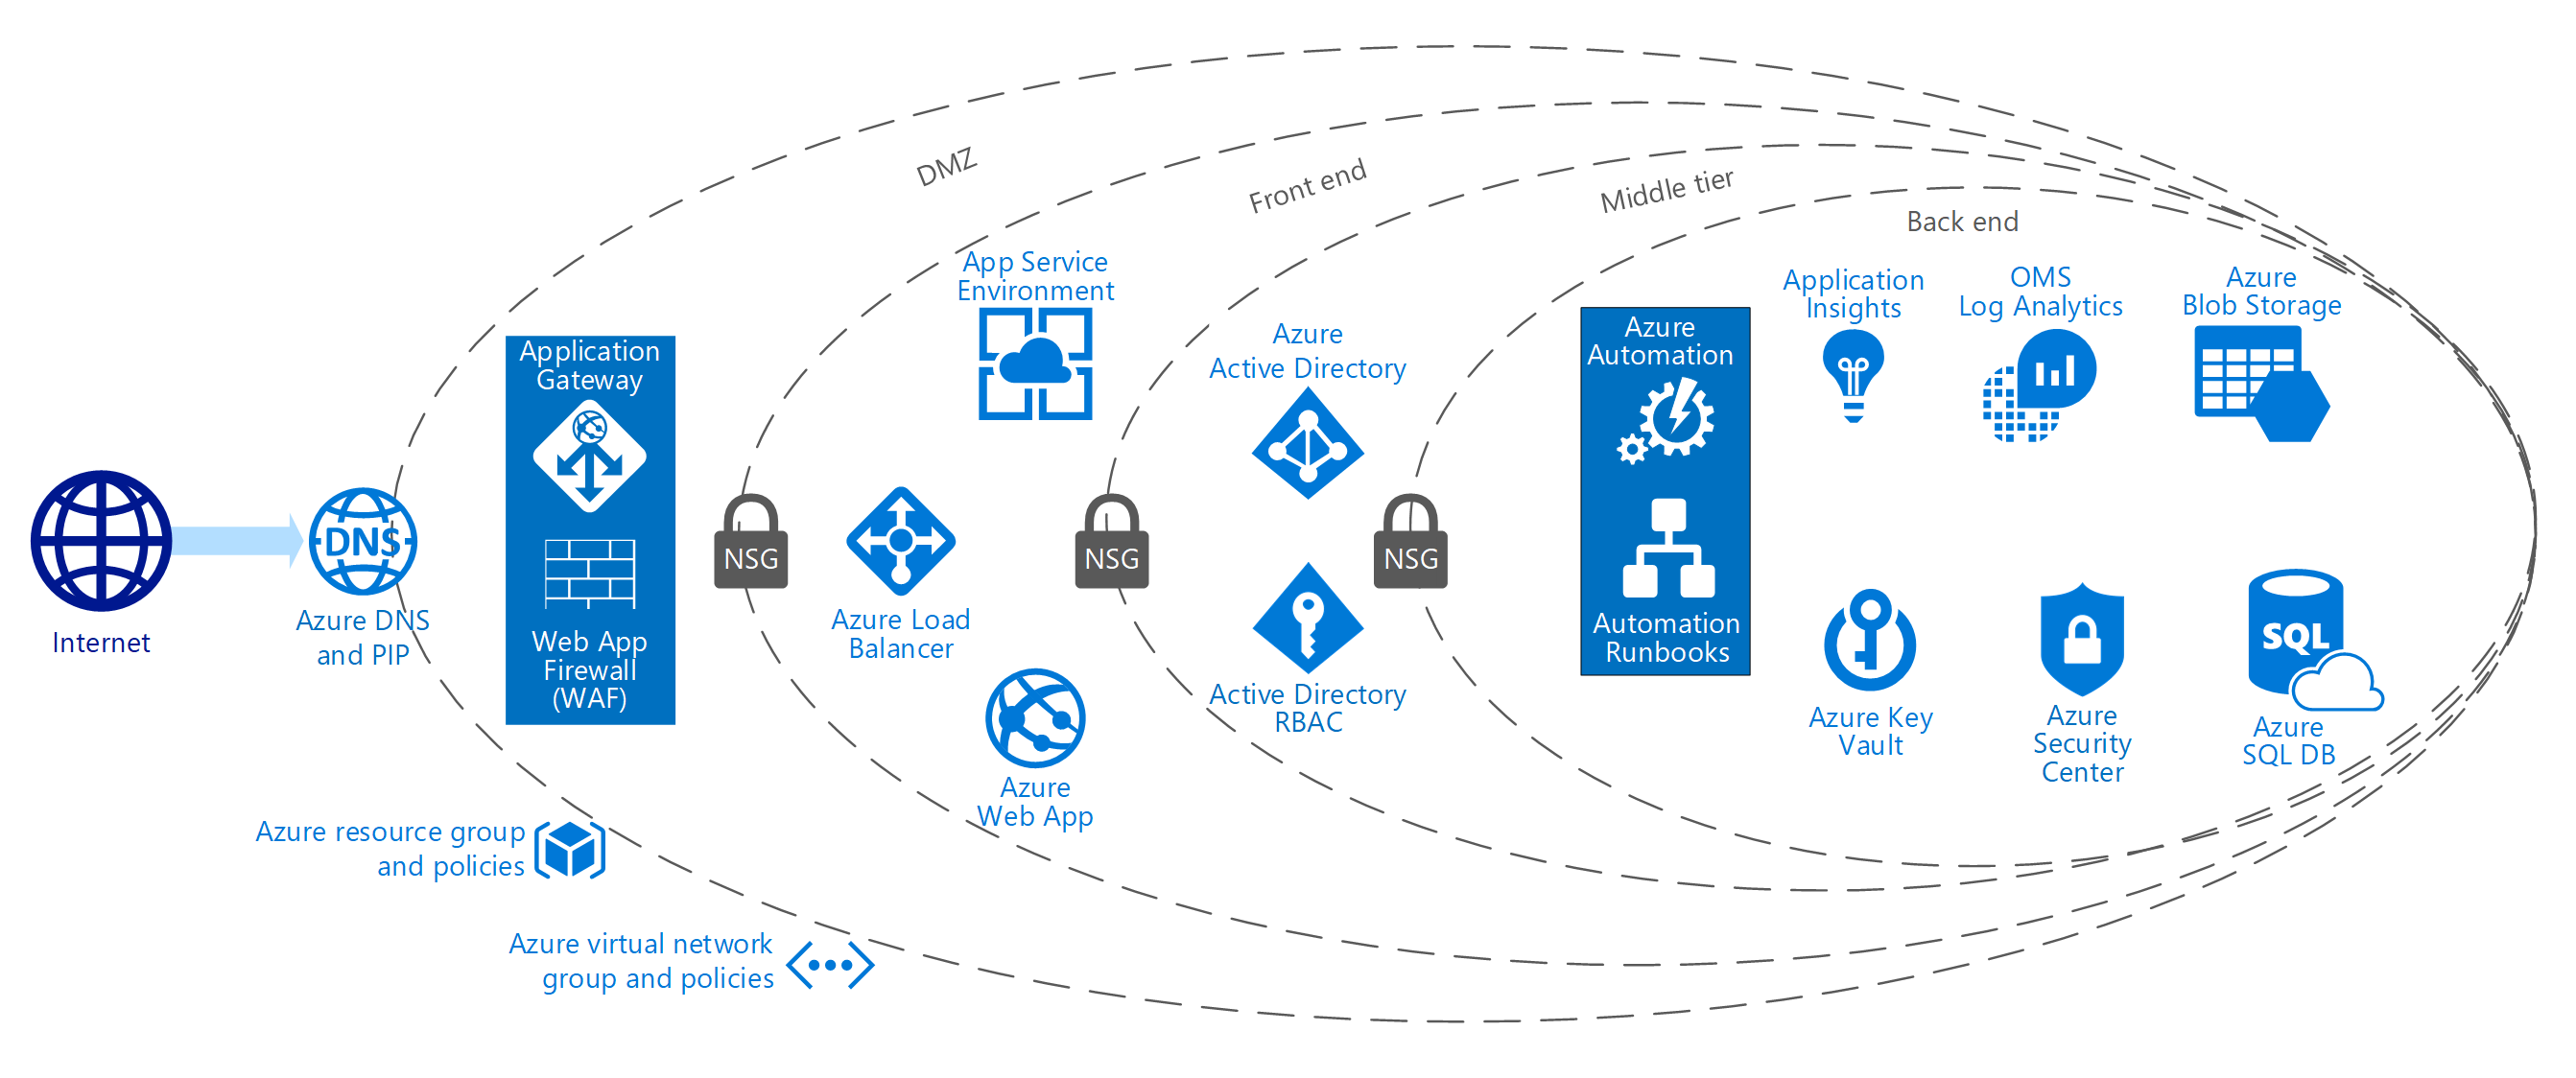 Azure security and compliance blueprint for pci dss compliant azure solutions blueprint malvernweather Images